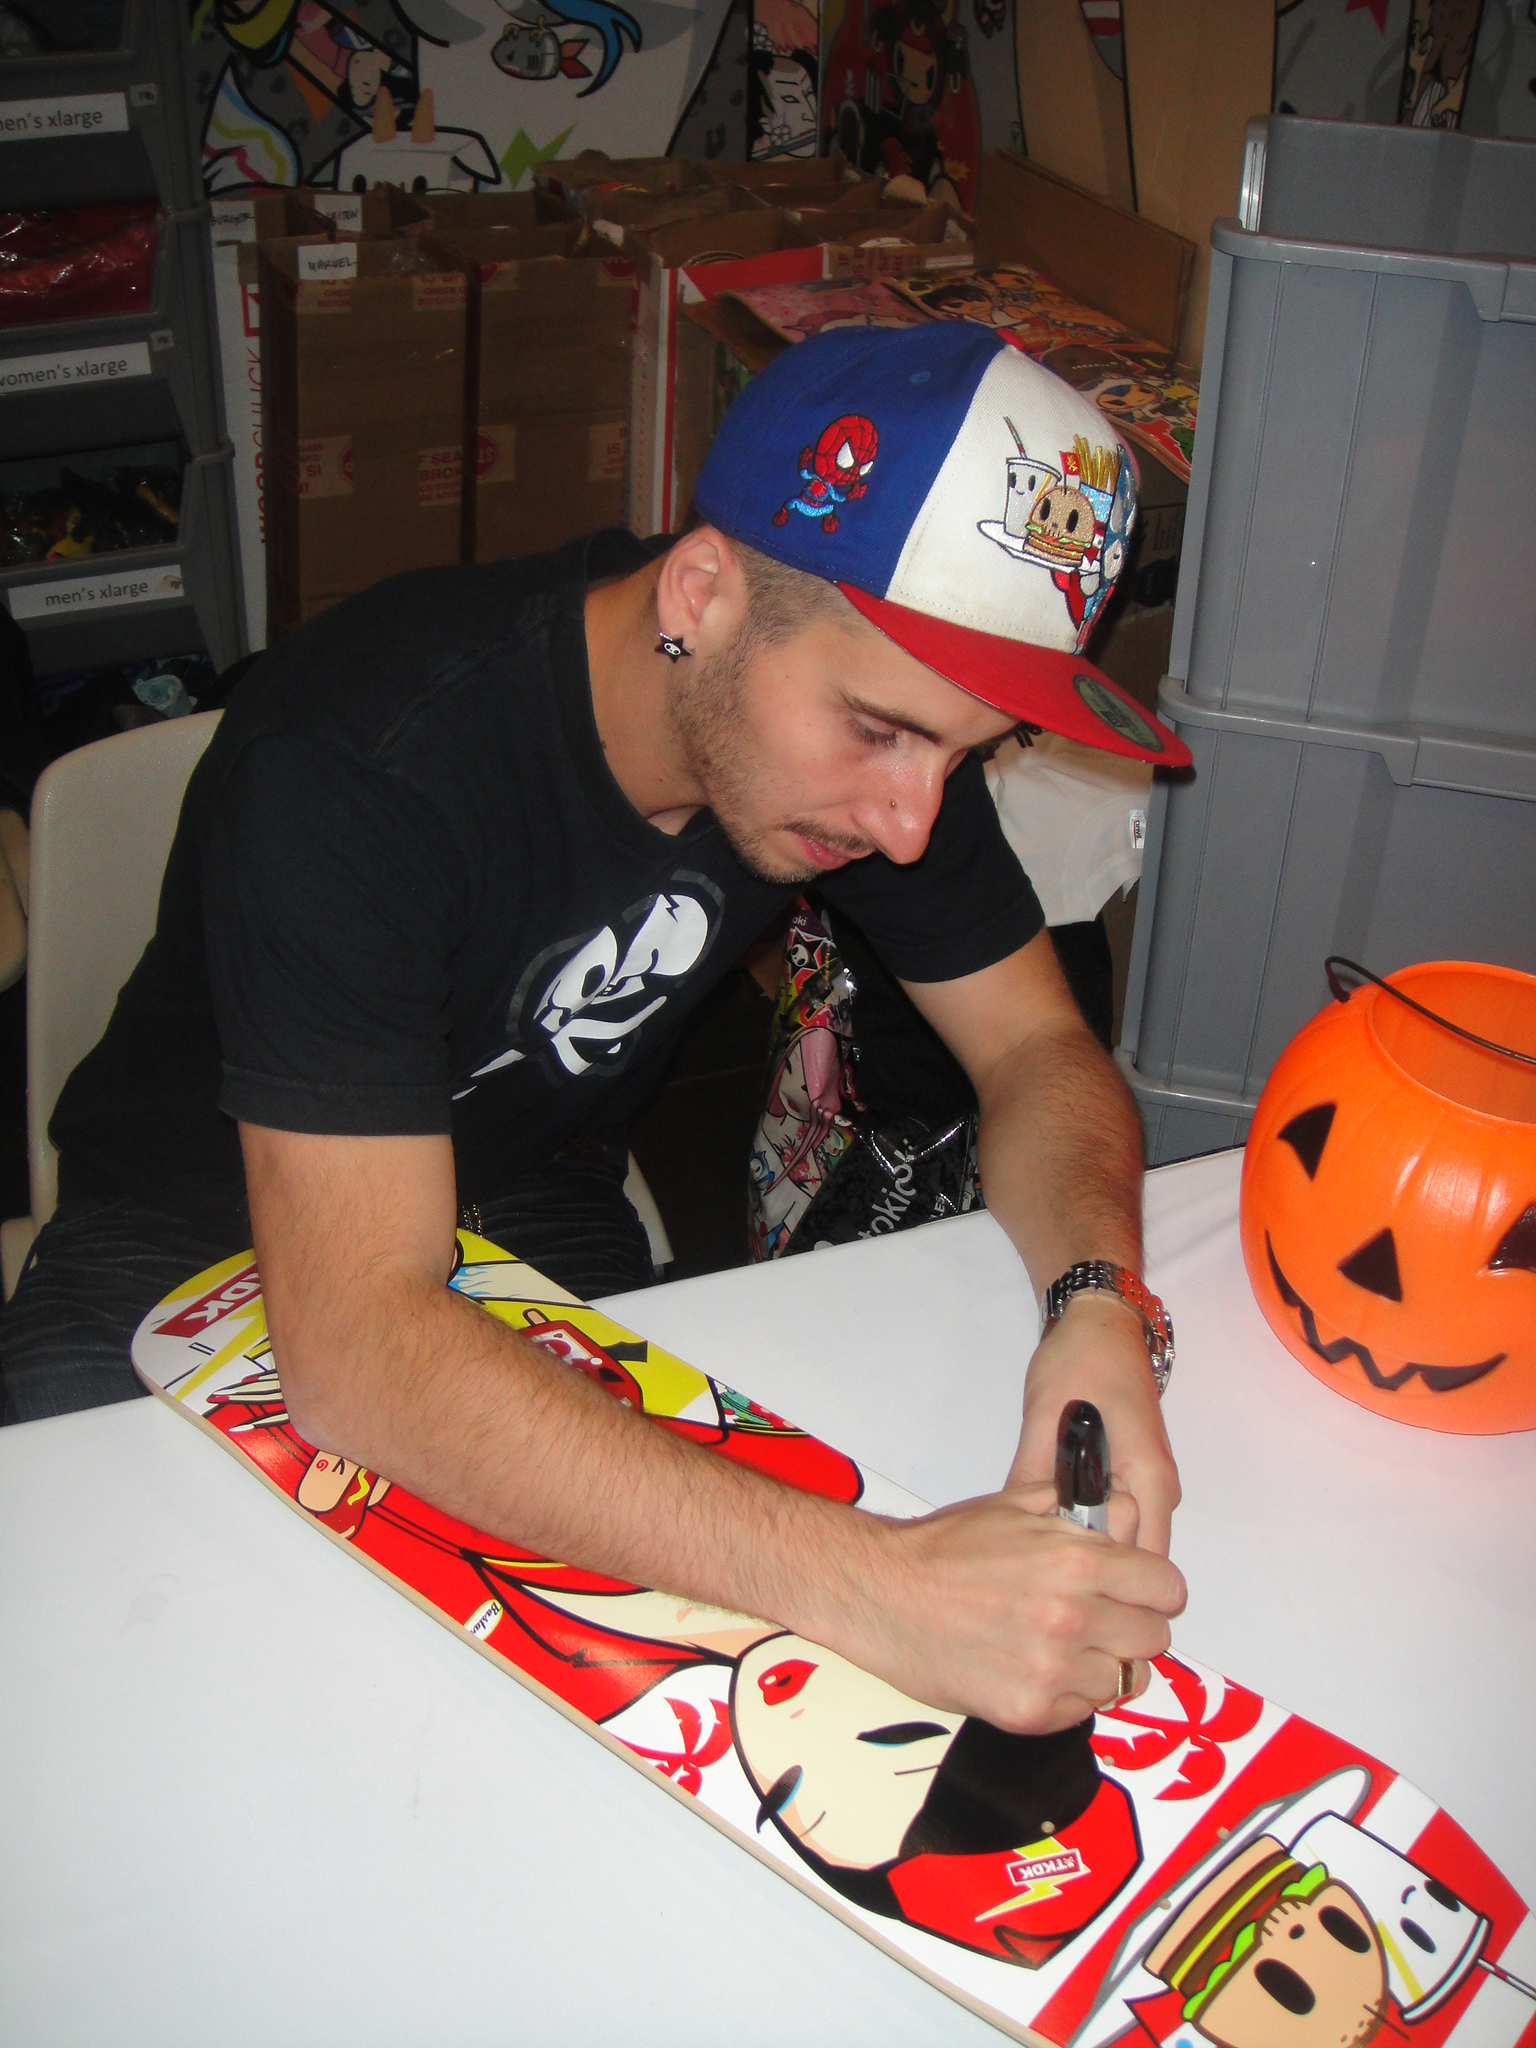 Went to Comic Con to get Simone Legno to sign skate deck...